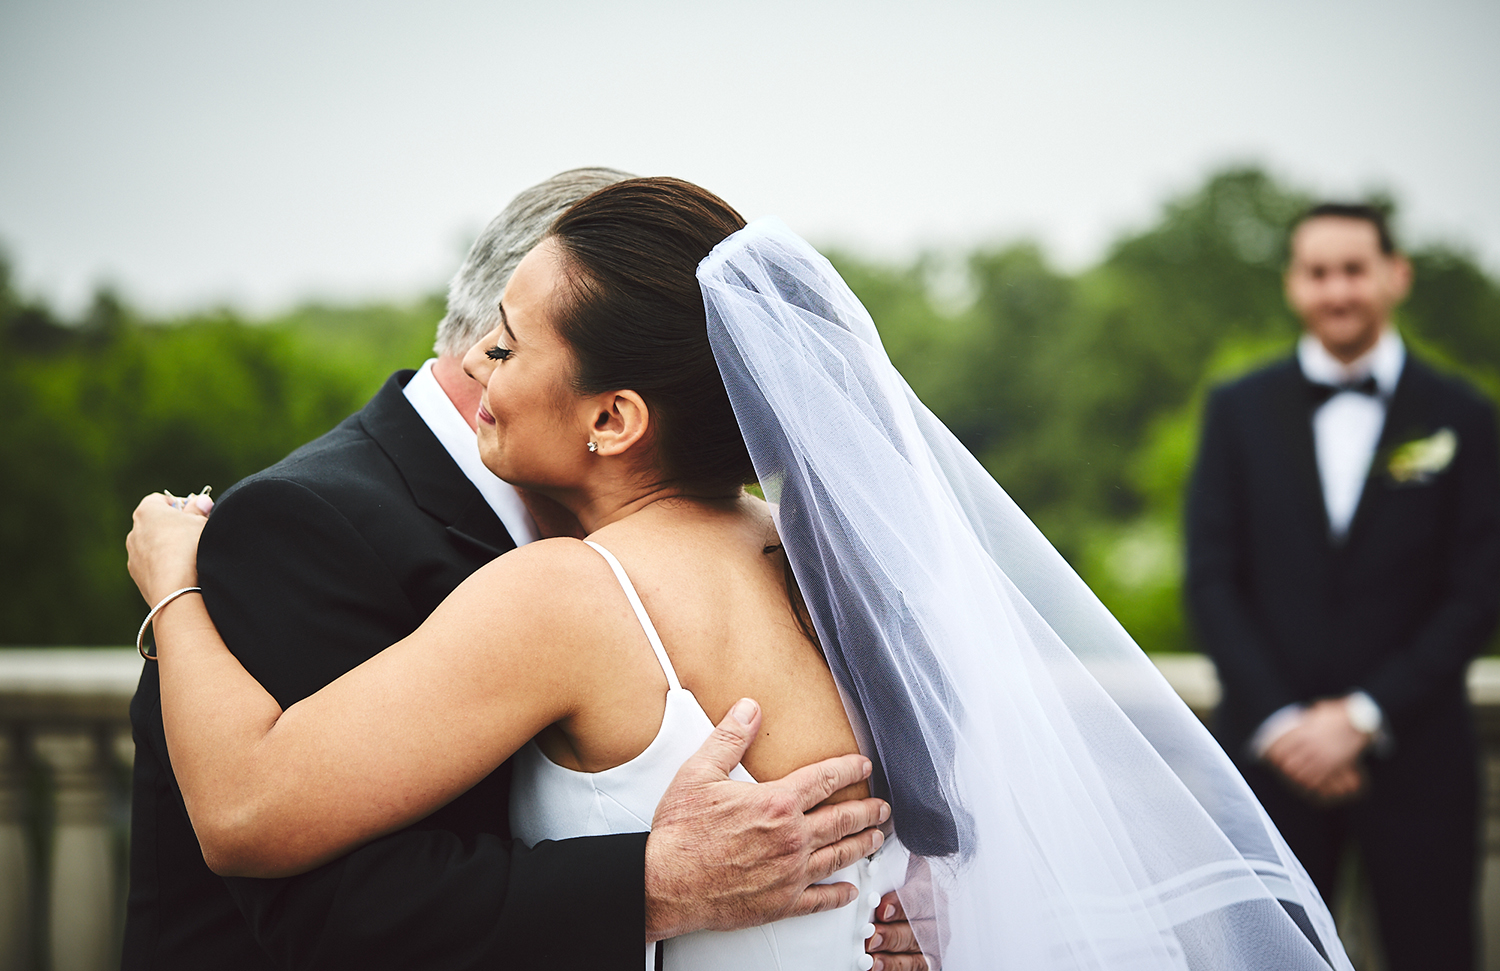 180519_PalaceatSomersetParkWeddingPhotography_NJWeddingPhotographer_By_BriJohnsonWeddings_0051.jpg